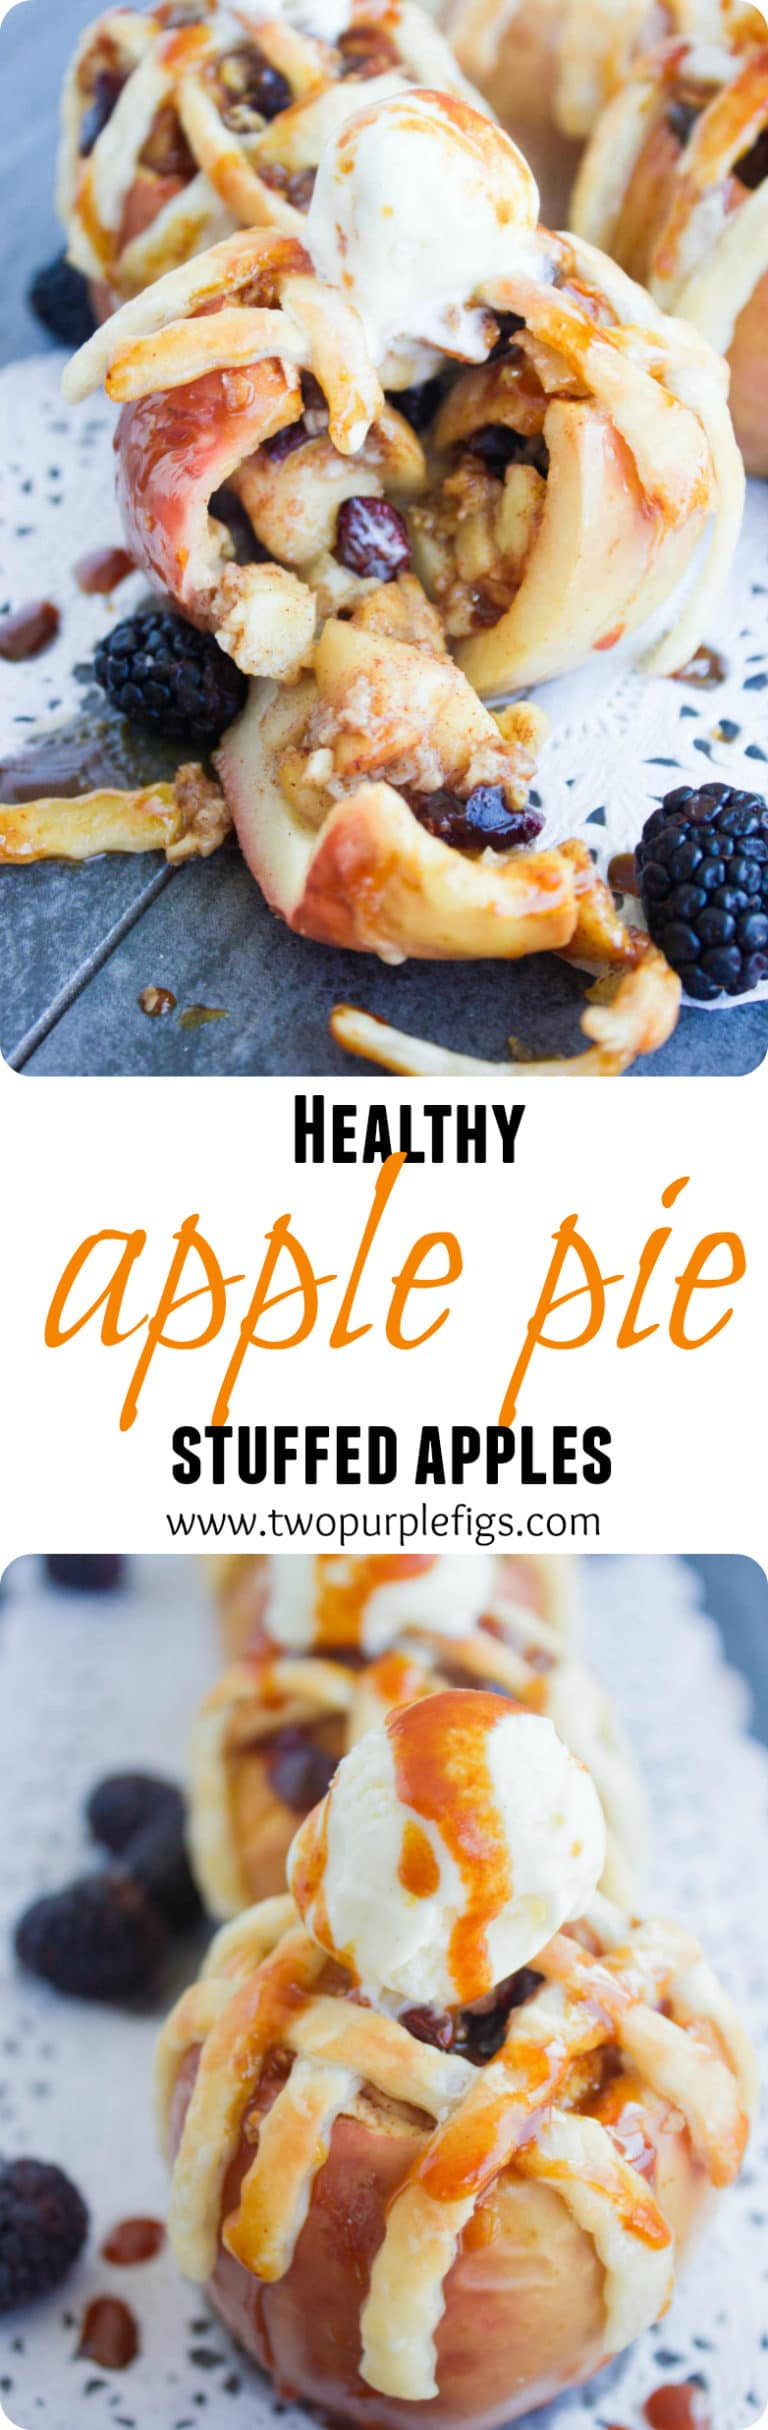 Apple Pie Stuffed Apples - these baked apples with pie lattice topping are every apple pie lovers wish come true—the whole flavor of apple pie but with half the calories and absolutely none of the guilt. #pie, #healthy, #thanksgiving, #dessert, #easy